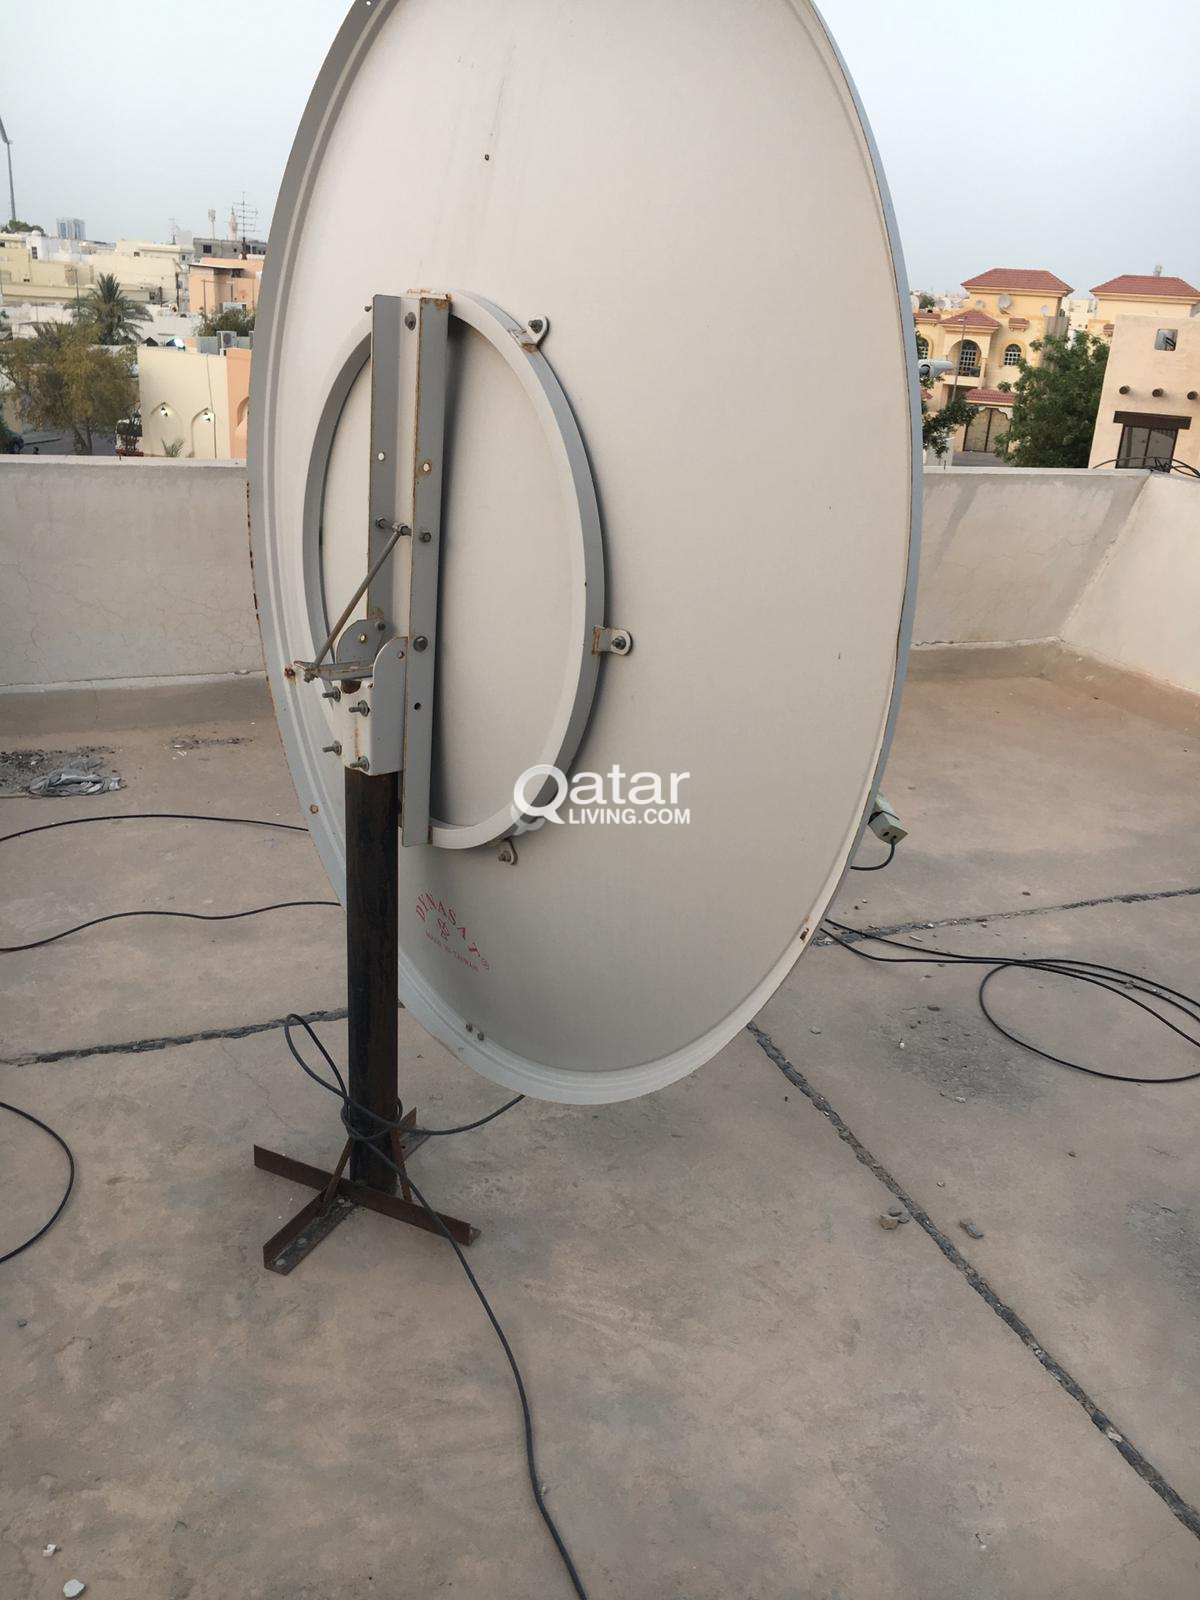 All kinds of Satellite Dish Installation